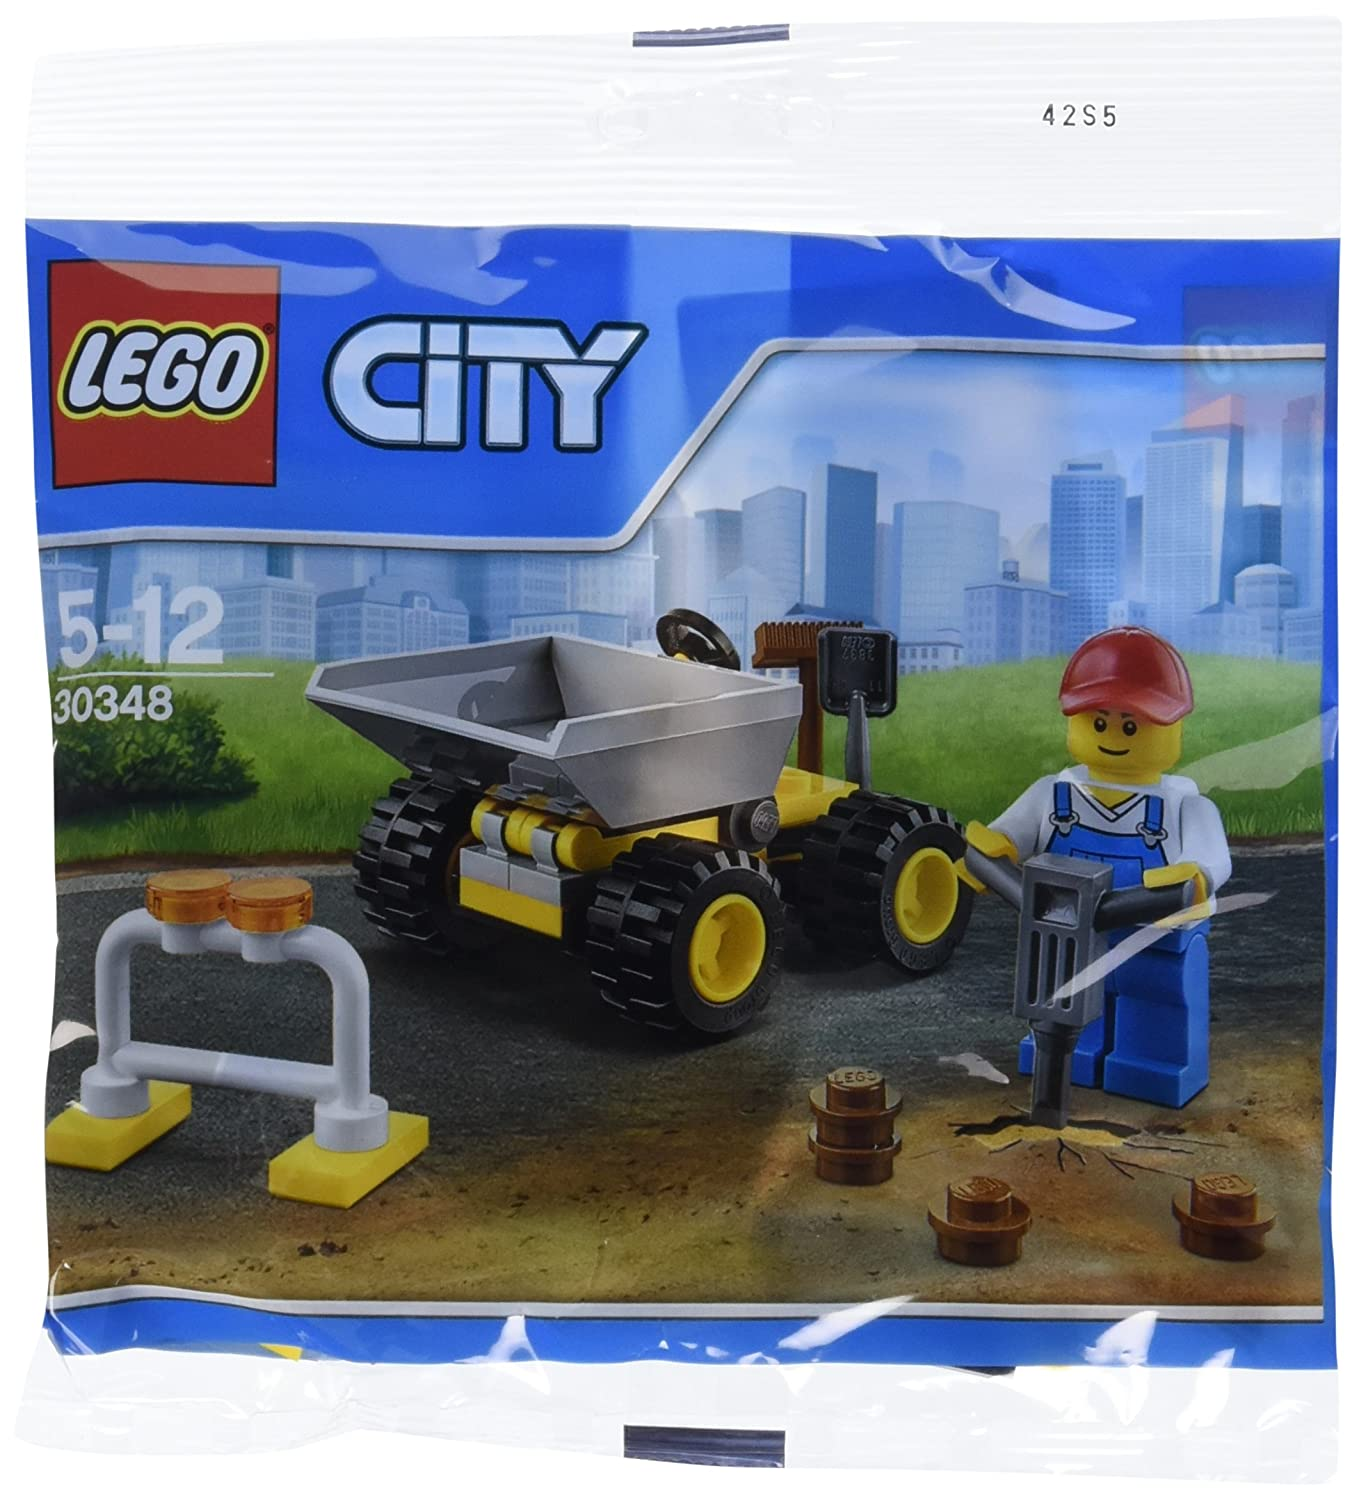 LEGO City Mini Dump Truck Vehicle and Construction Worker Minifigure Toy Set 30348 Bagged